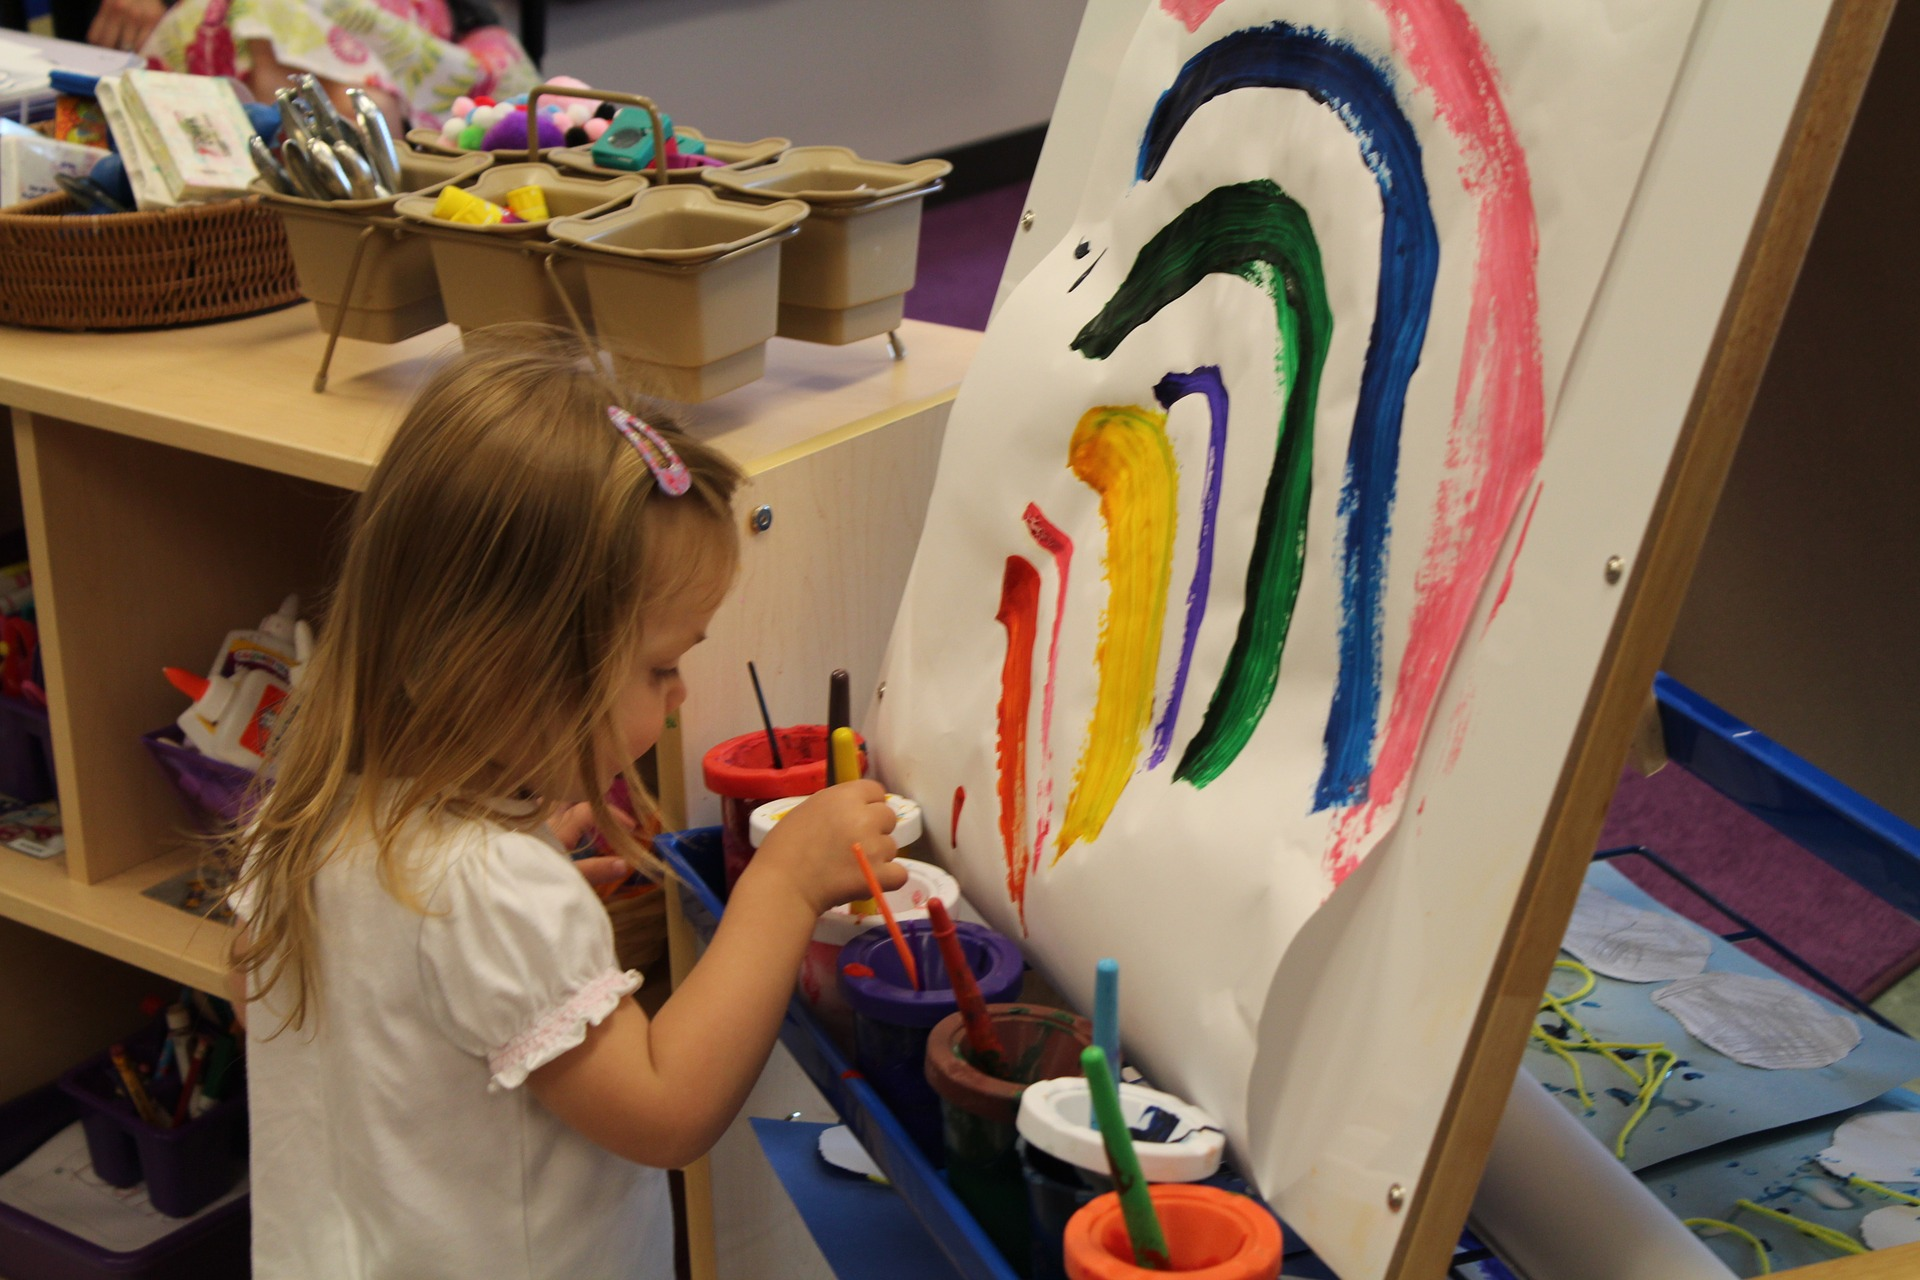 Enrichment programs such as art or music can boost your child's confidence in school.